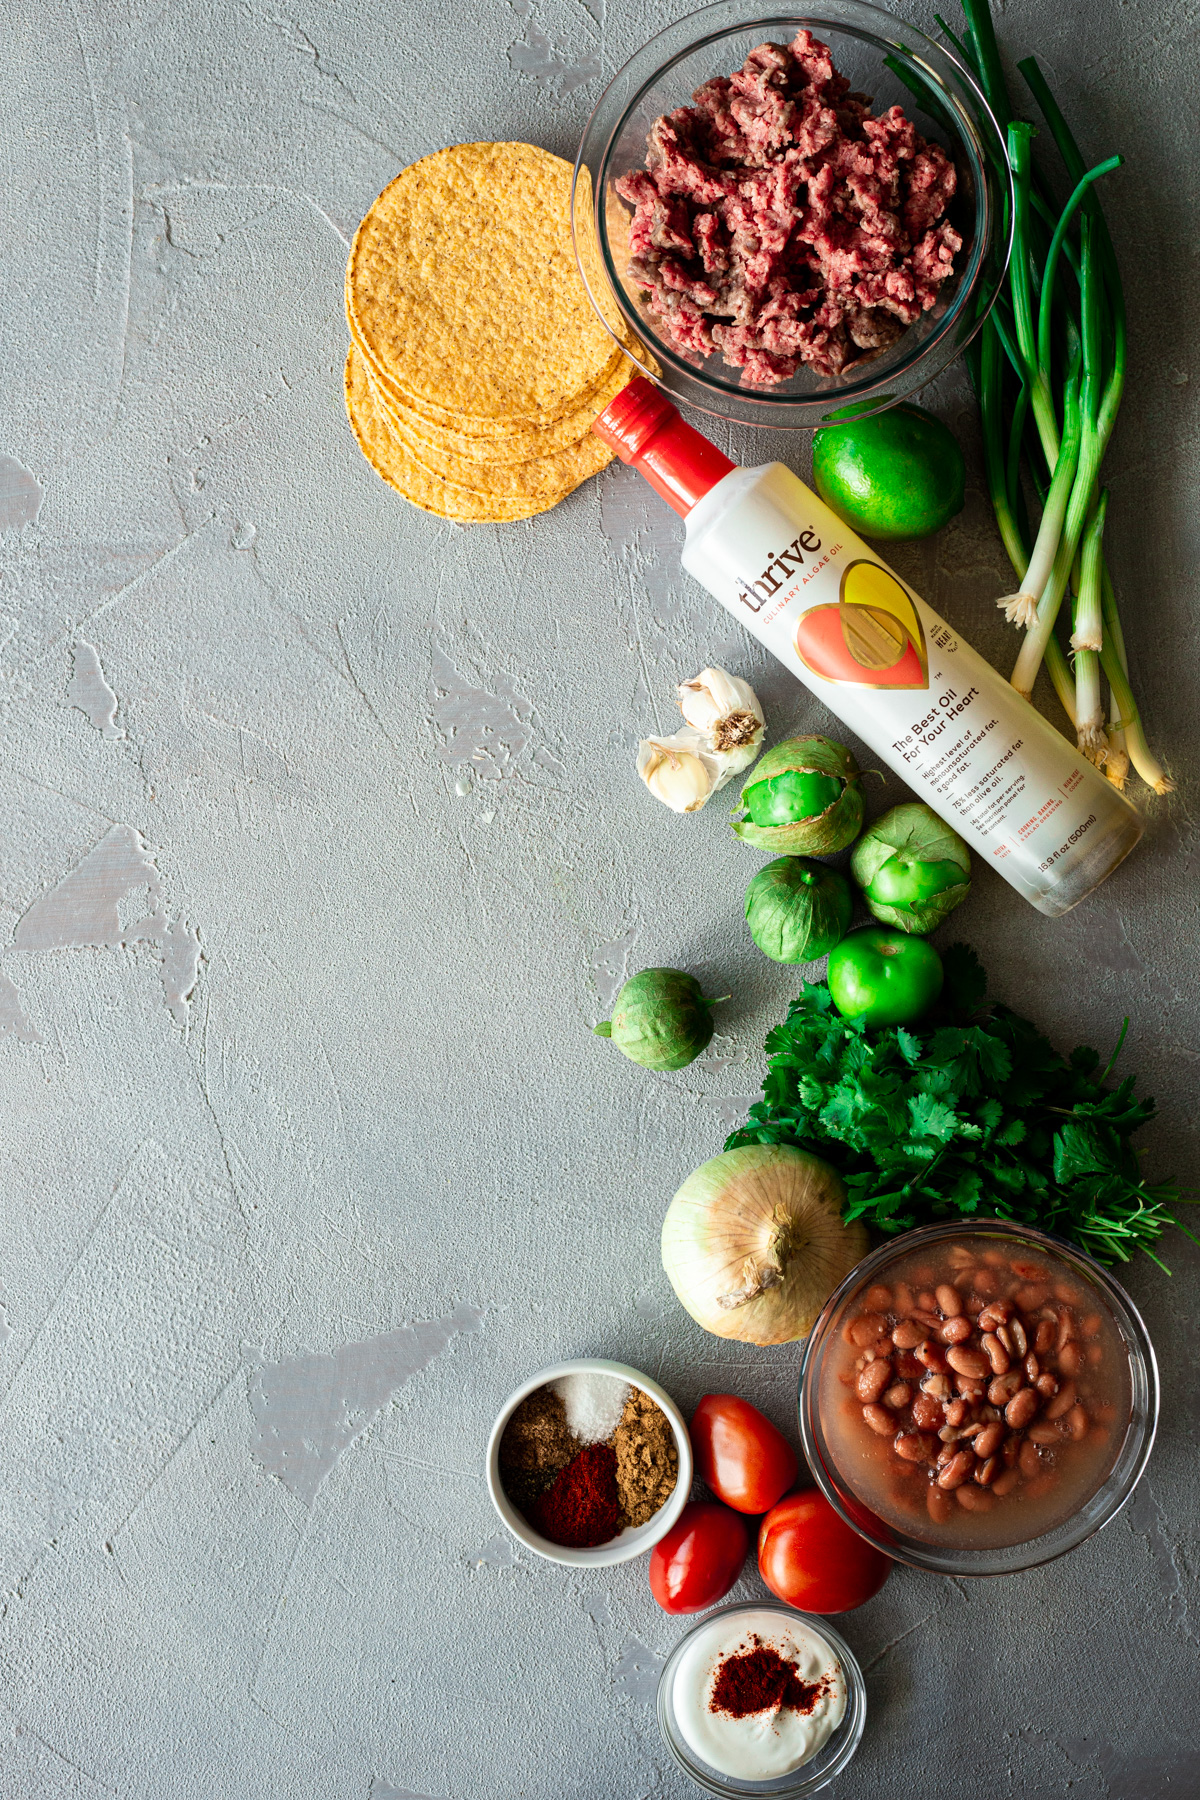 ingredients for bean and beef tostadas with tomatillo salsa and chipotle crema